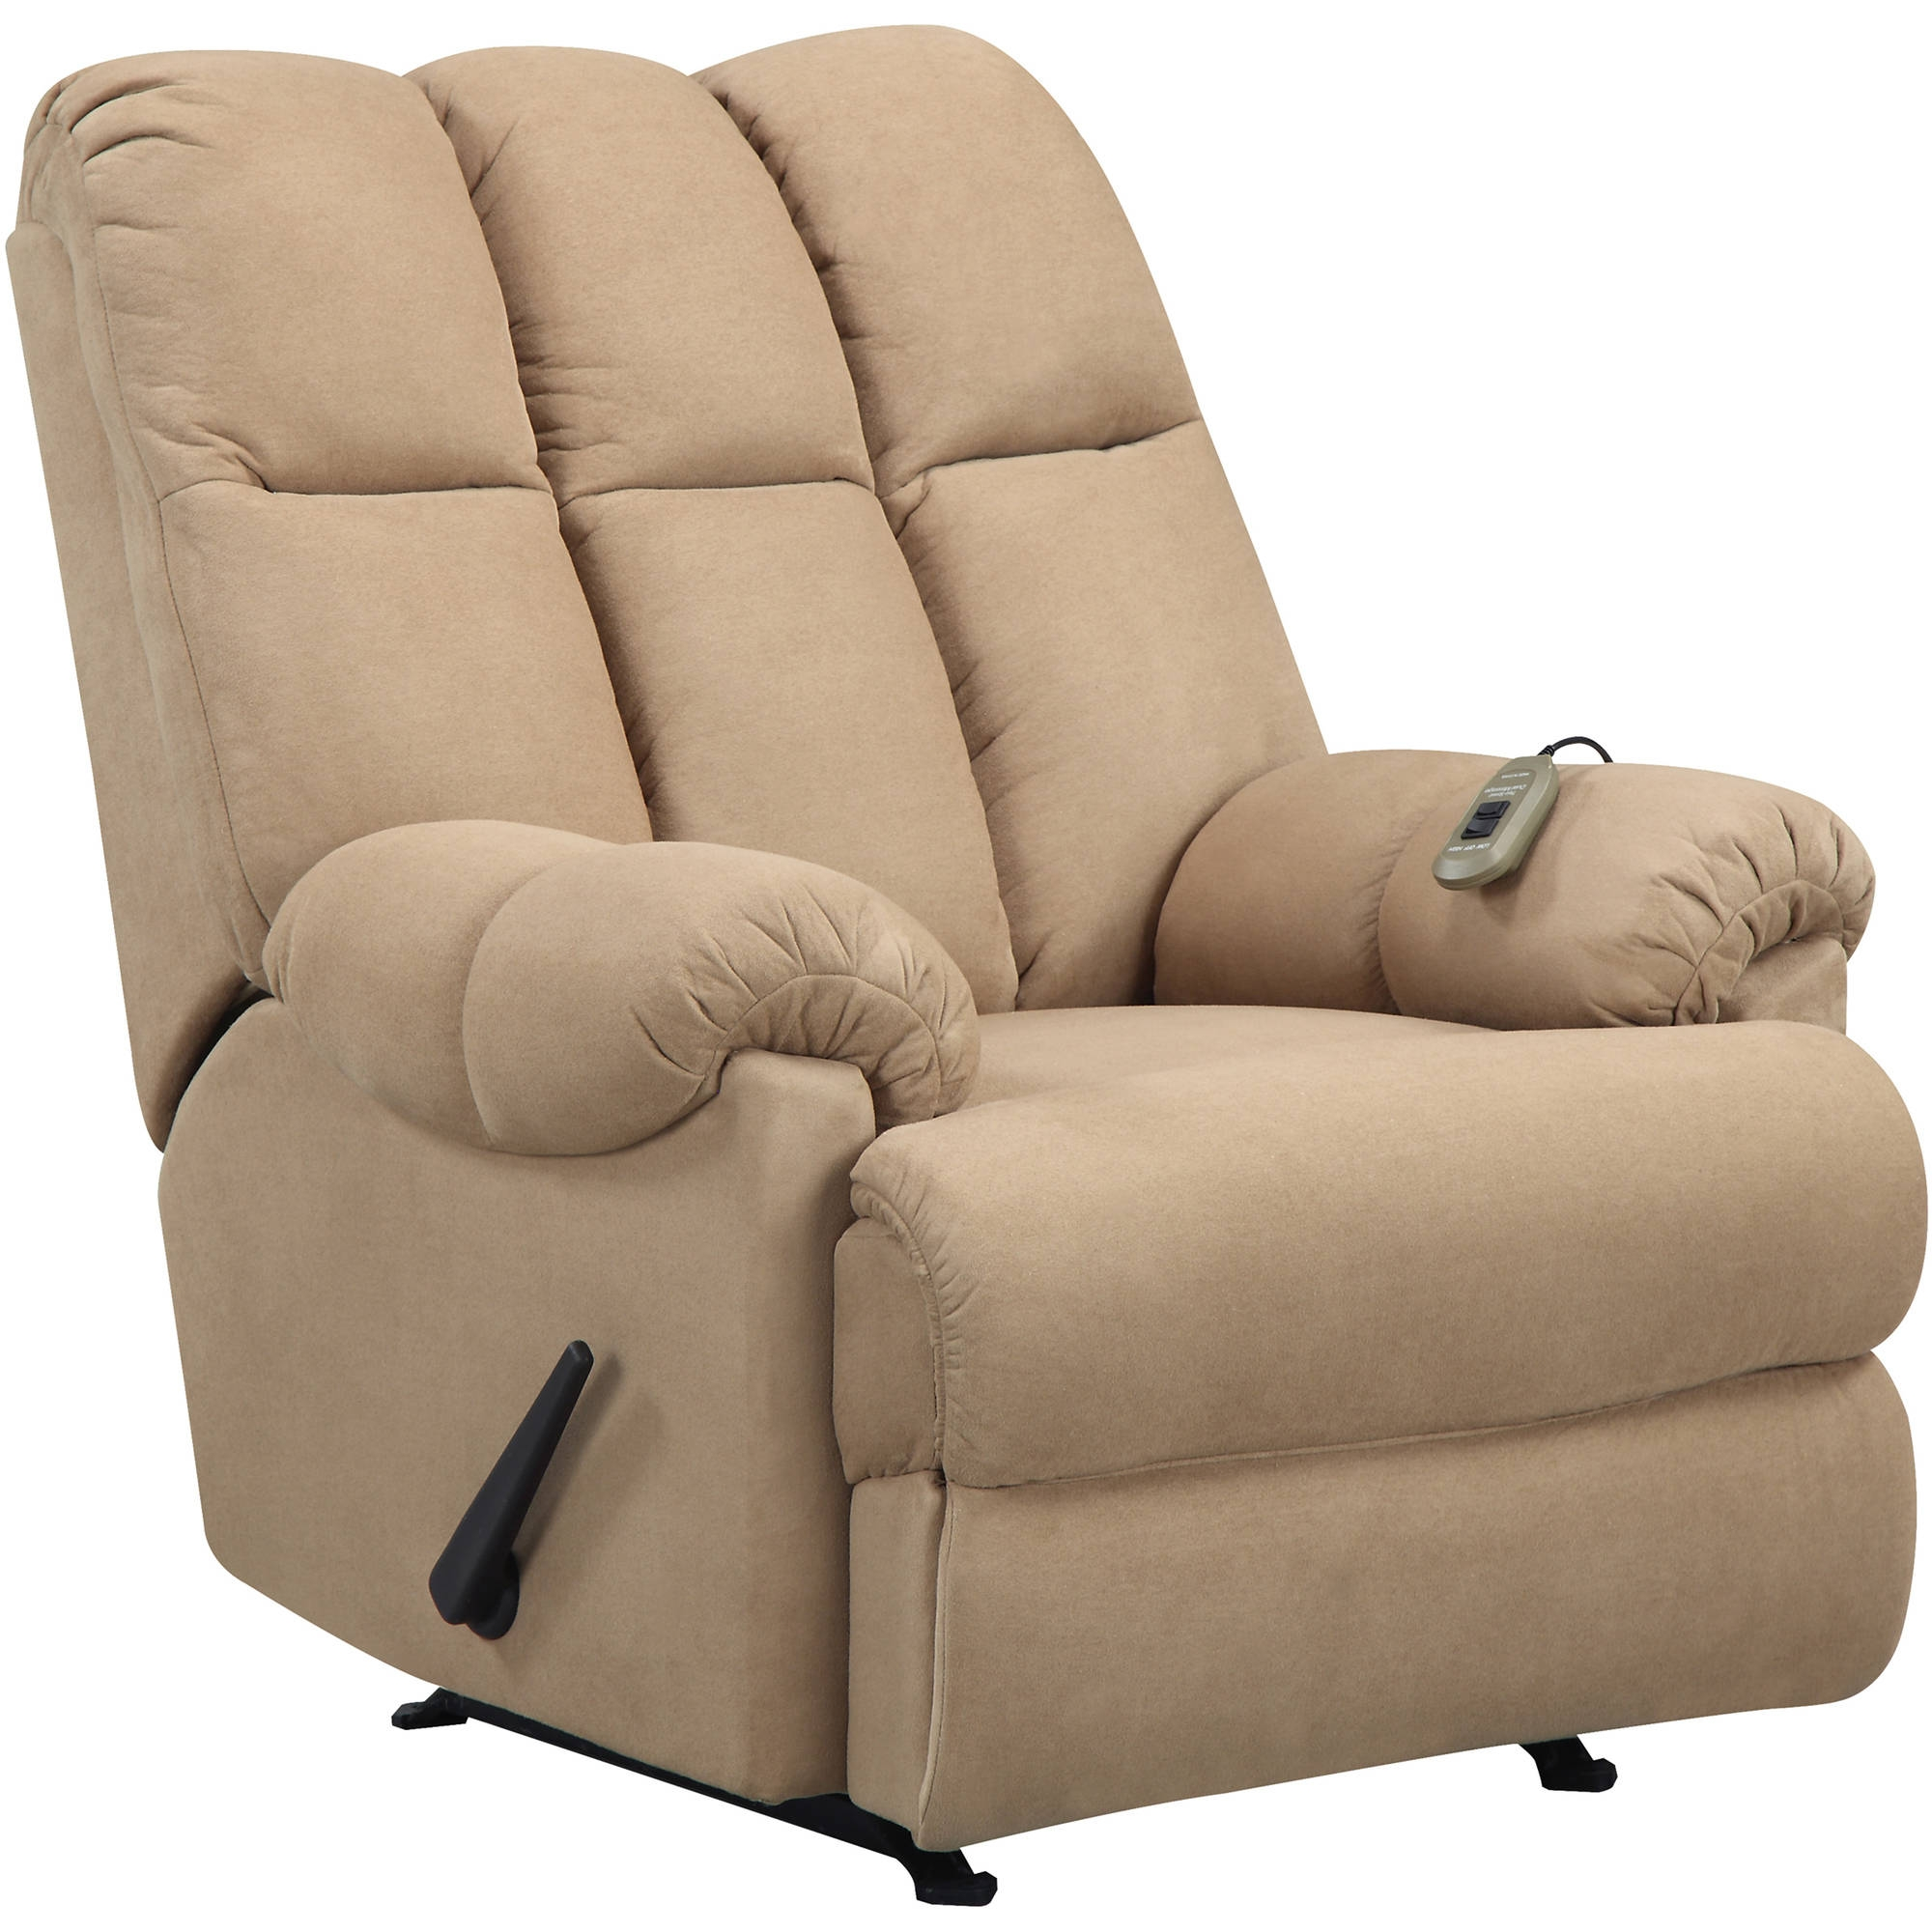 Sofas Center Impressive Rocking Sofa Chair Pictures Design Within Sofa Chair Recliner (Image 14 of 15)